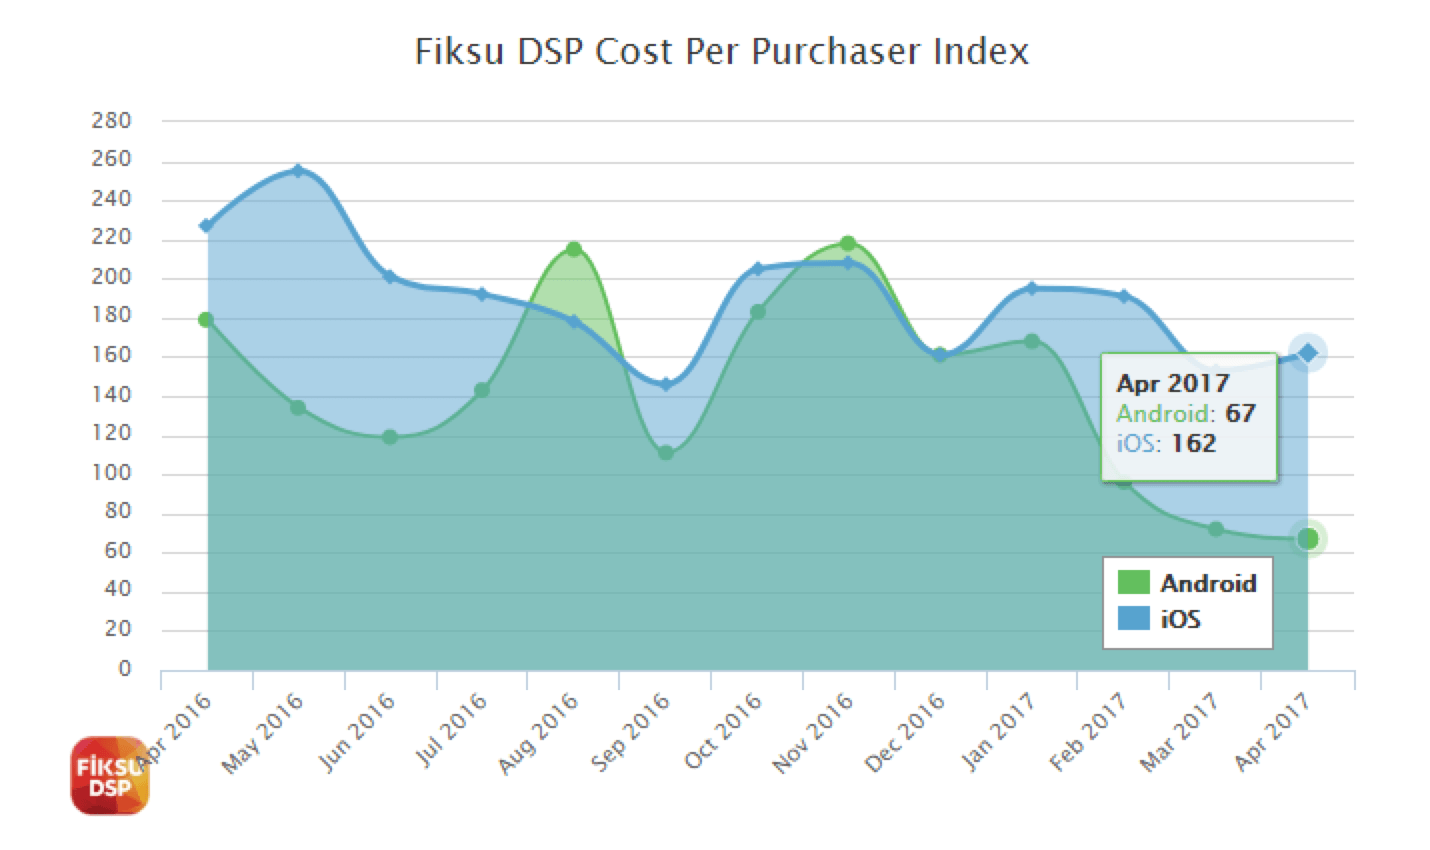 Fiksu DSP Cost Per Purchase Index